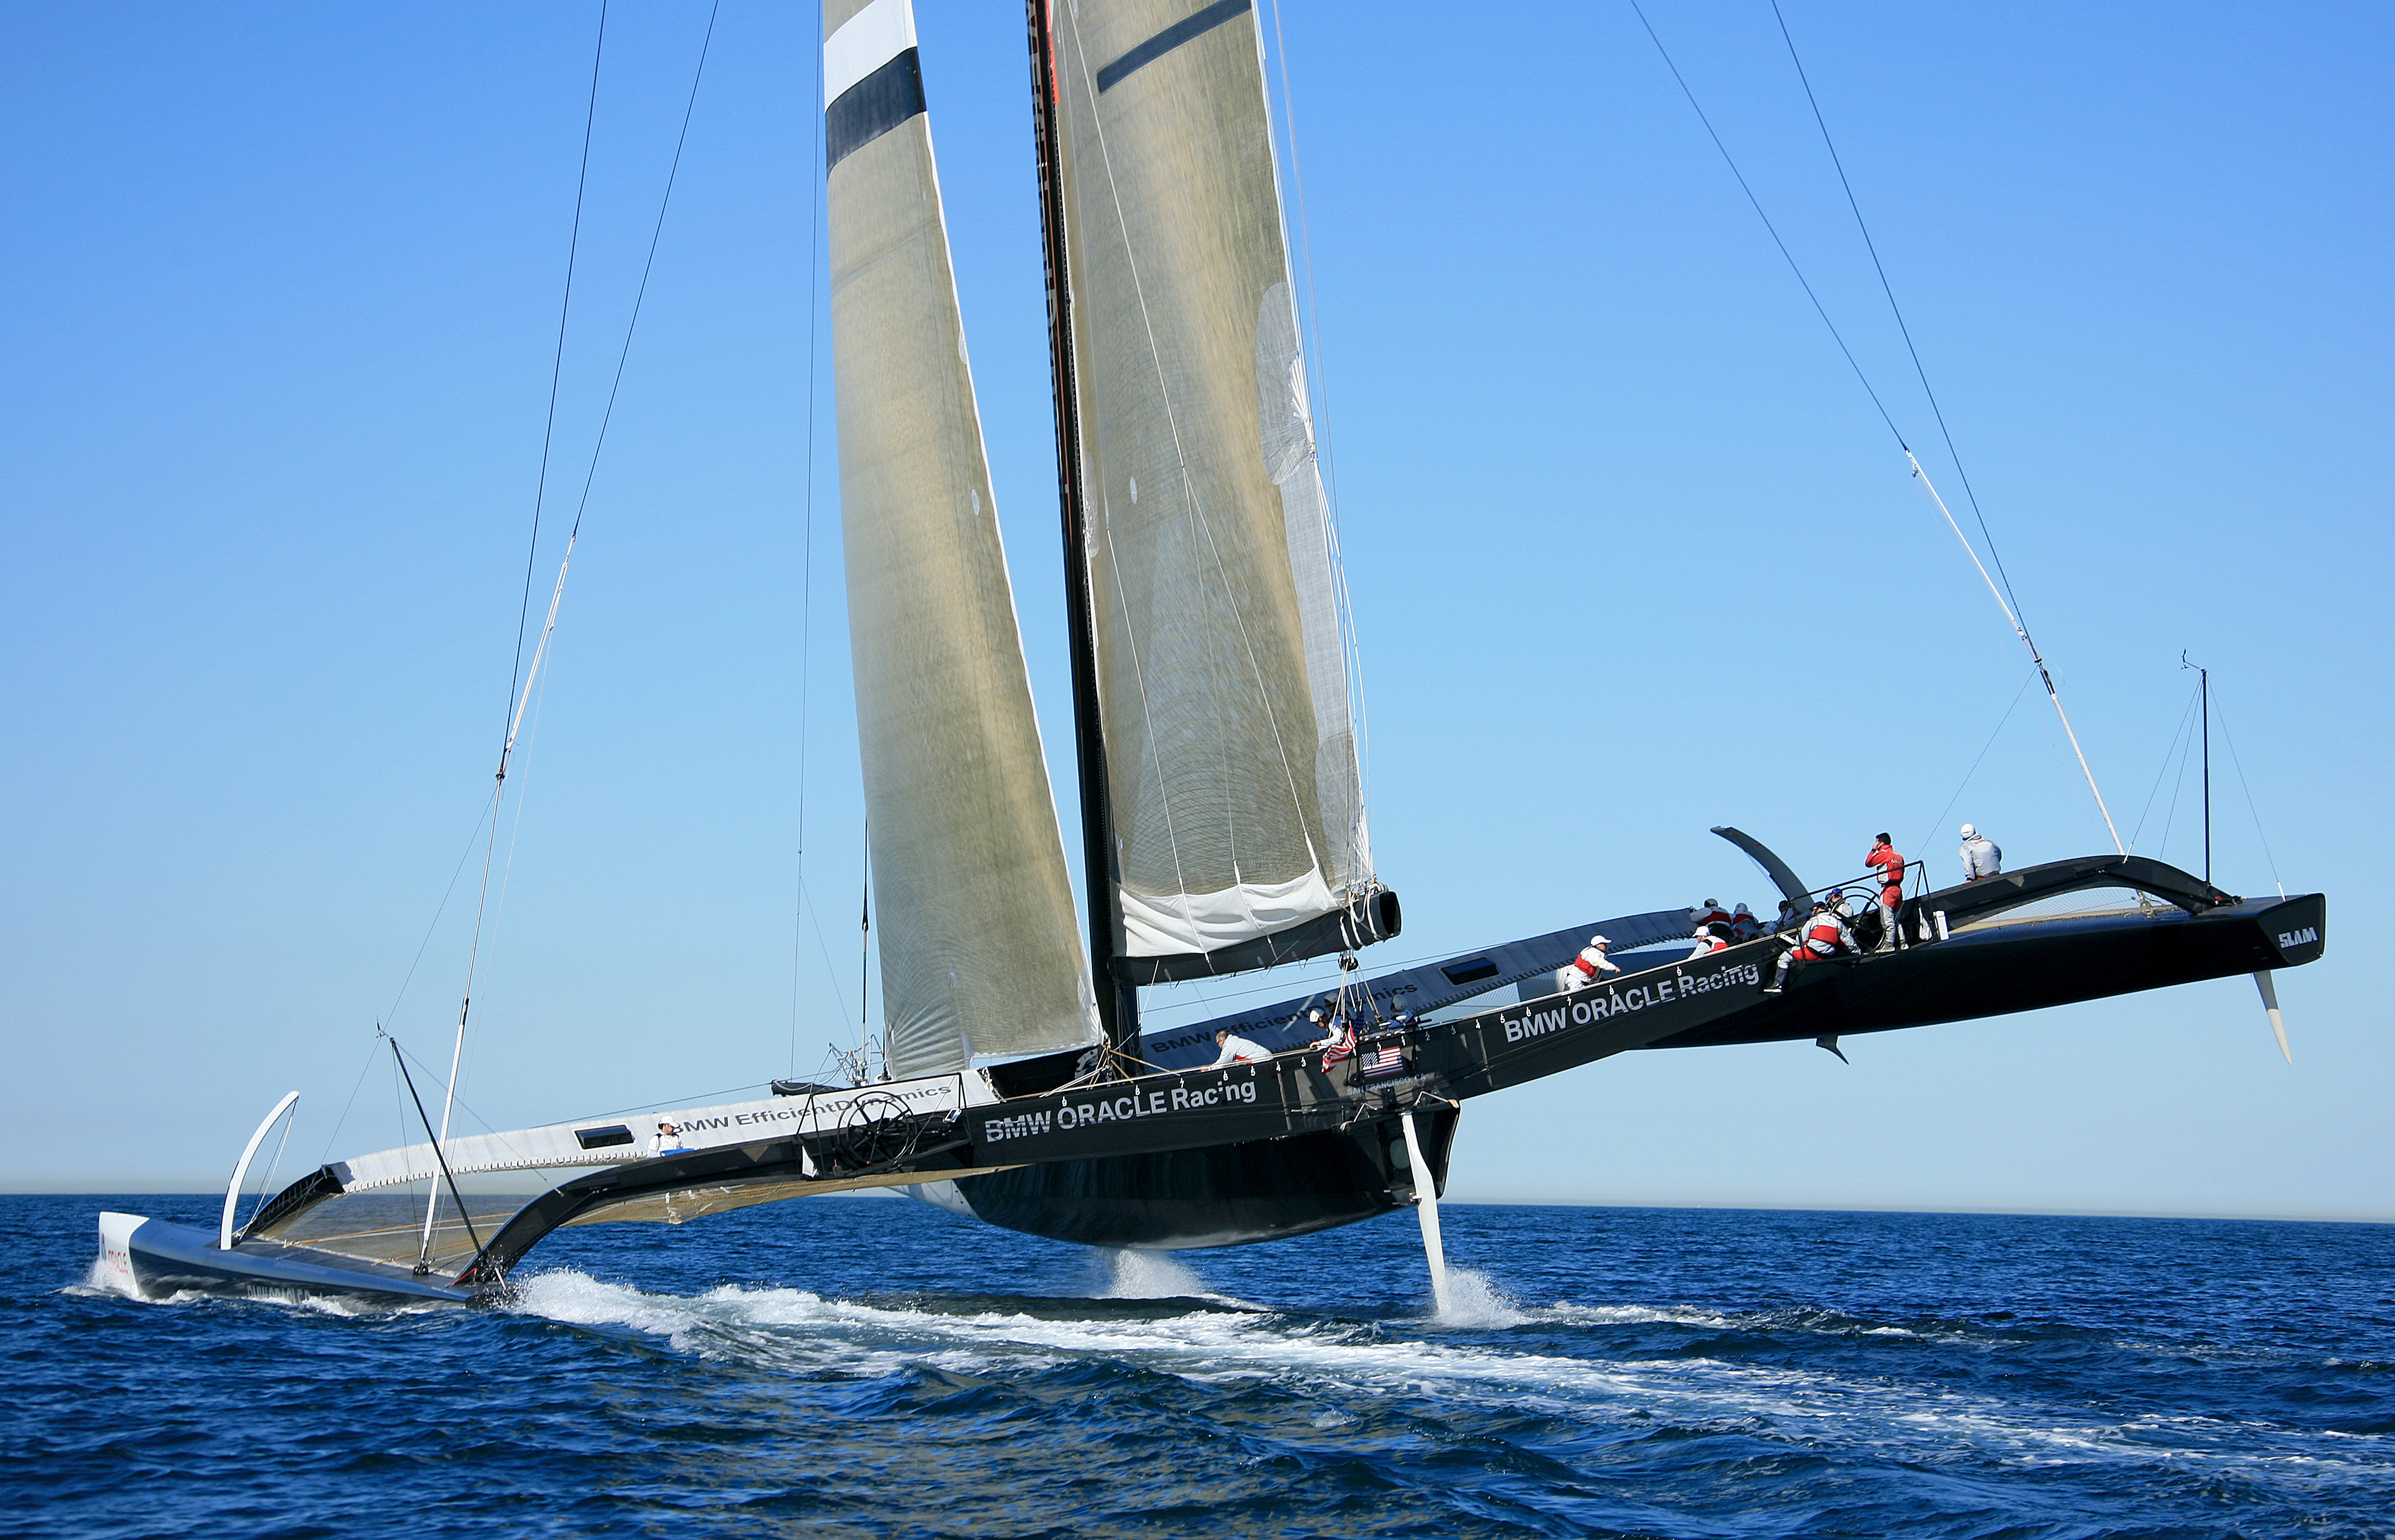 Trimaran segeln  File:BMW Oracle BOR90.JPG - Wikimedia Commons